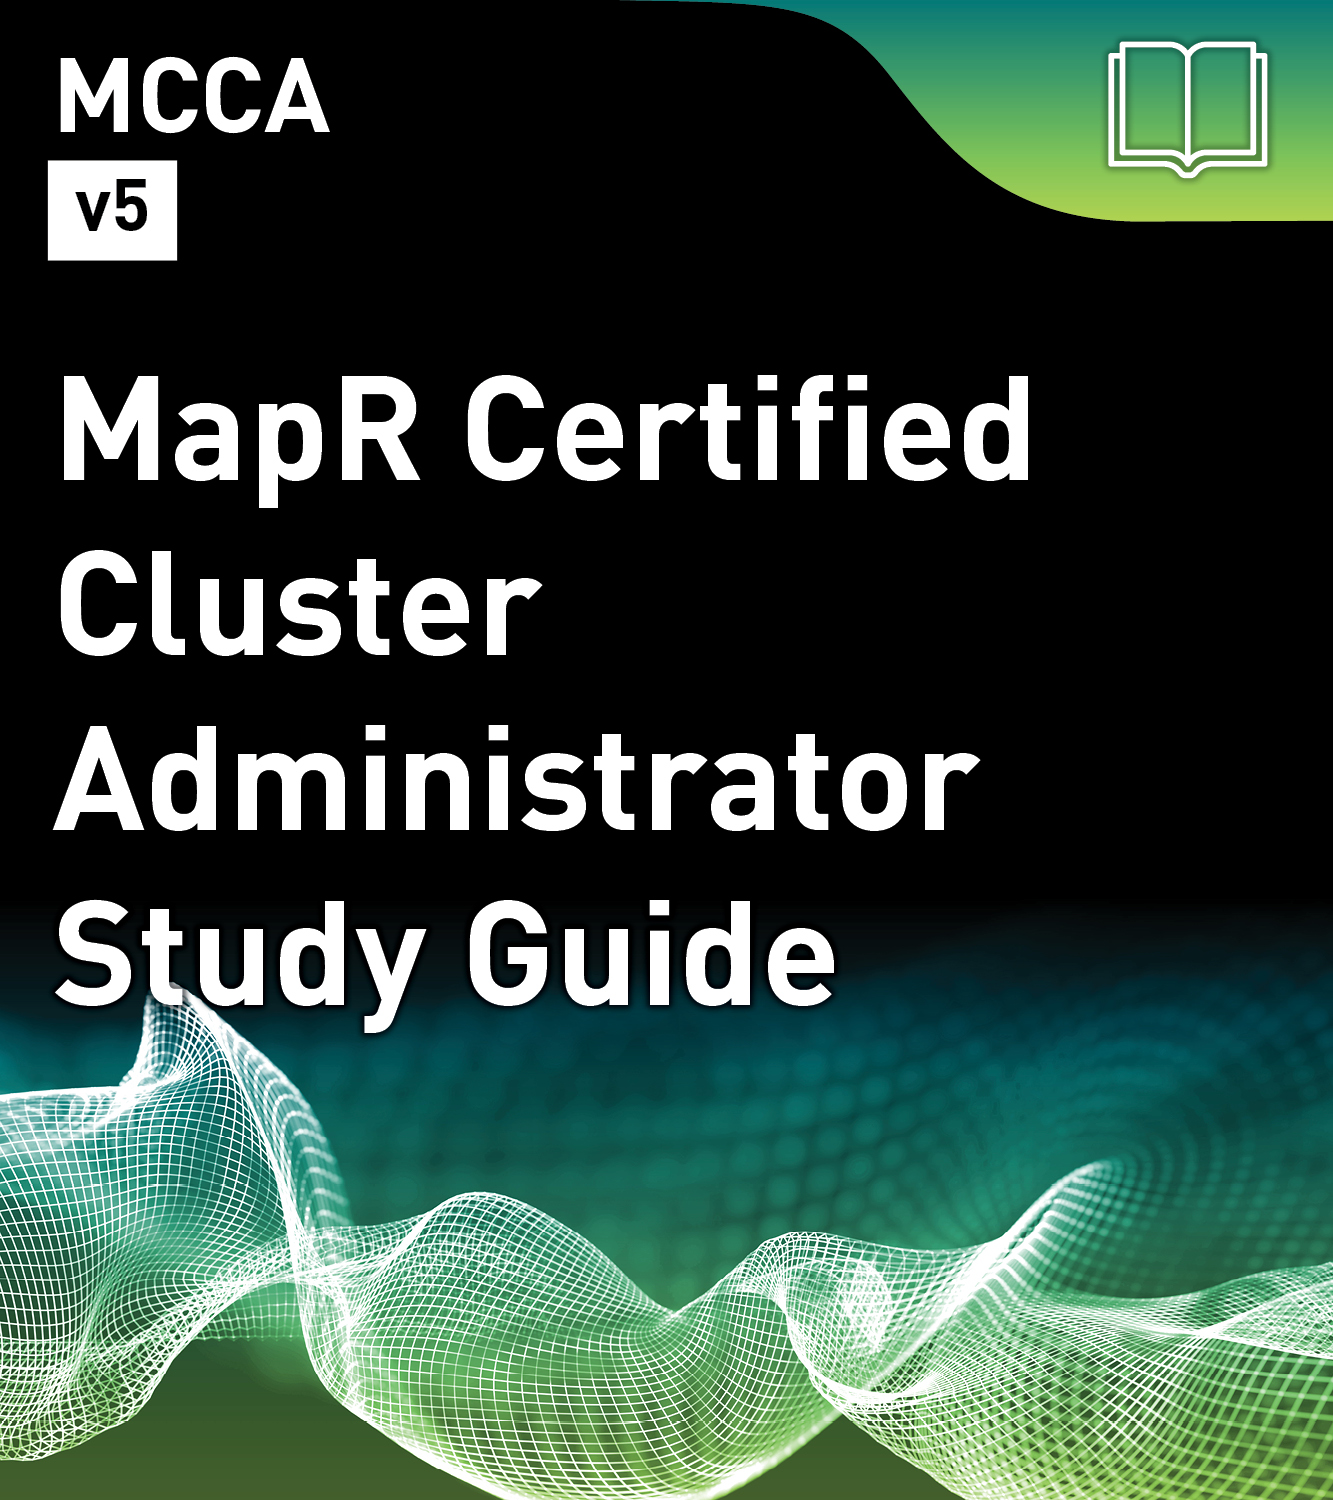 MCCA Study Guide - MapR Certified Cluster Administrator (v5)